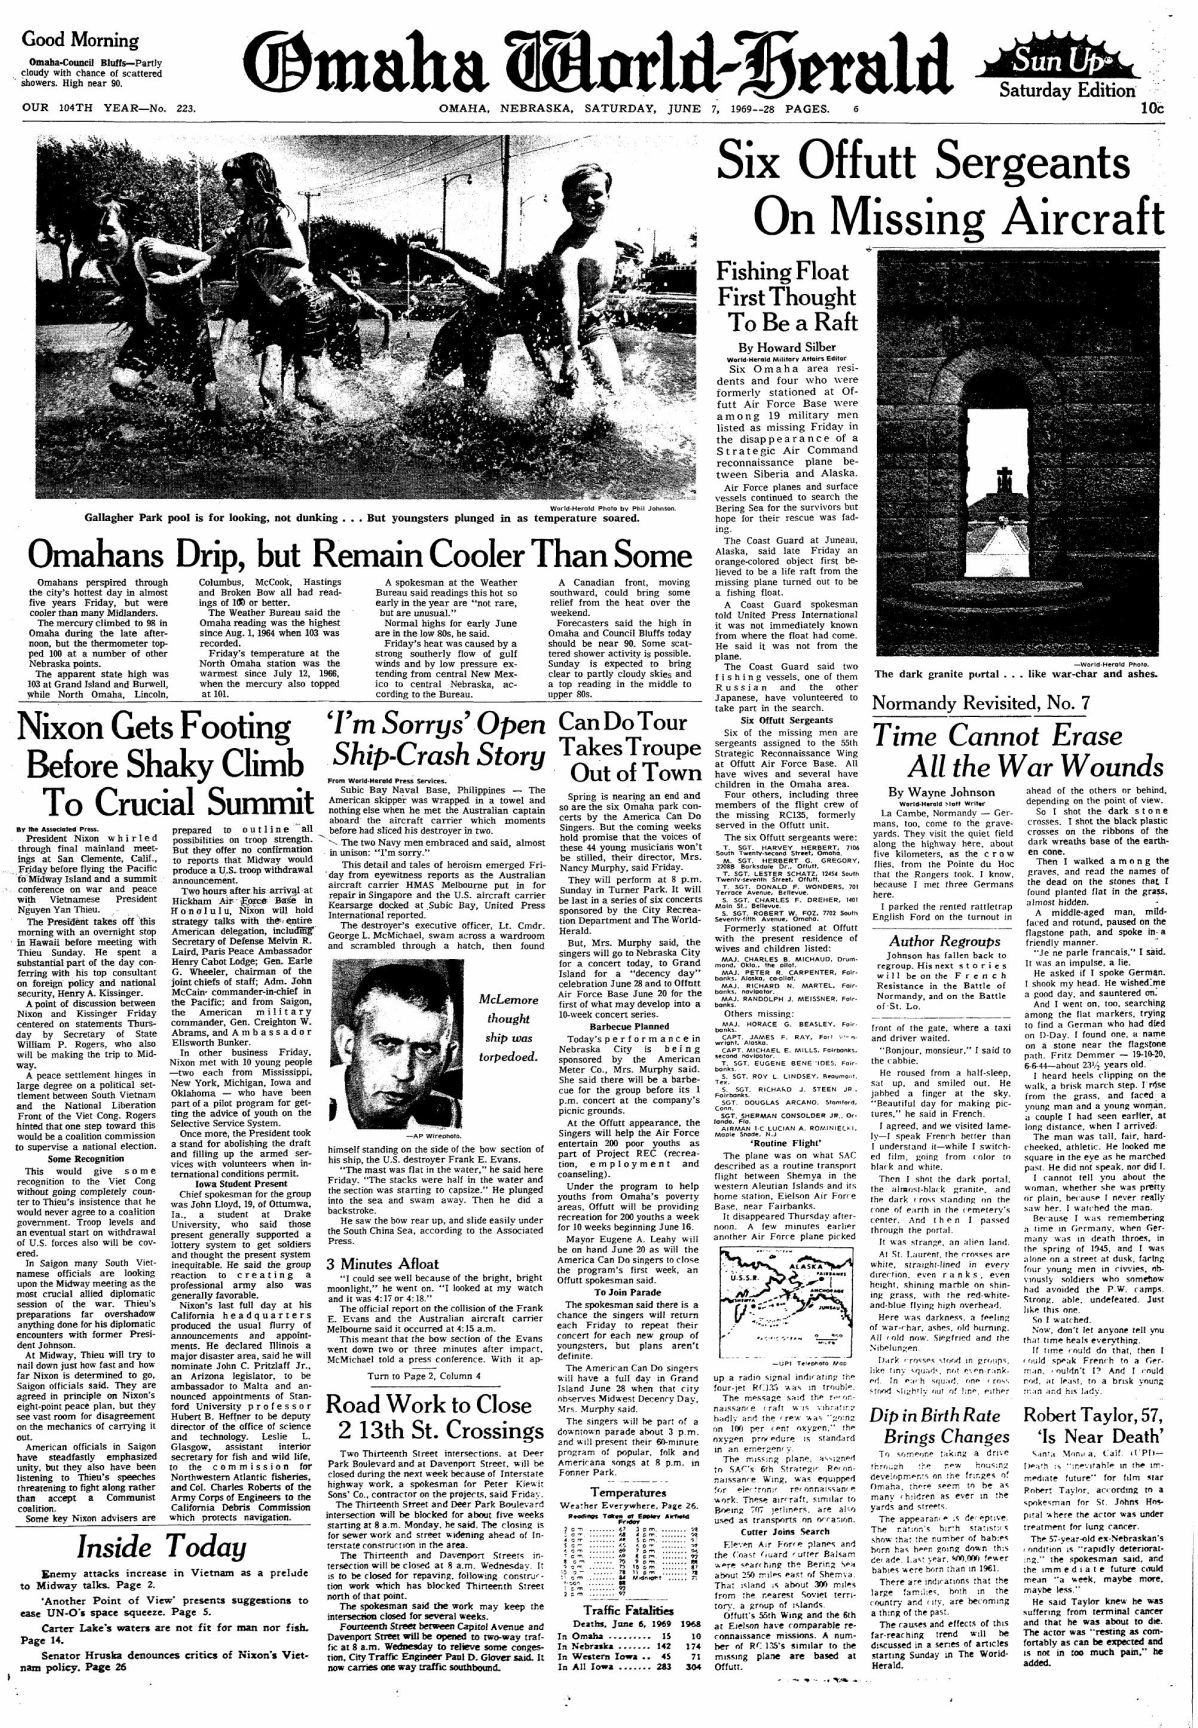 World Herald front page June 7, 1969